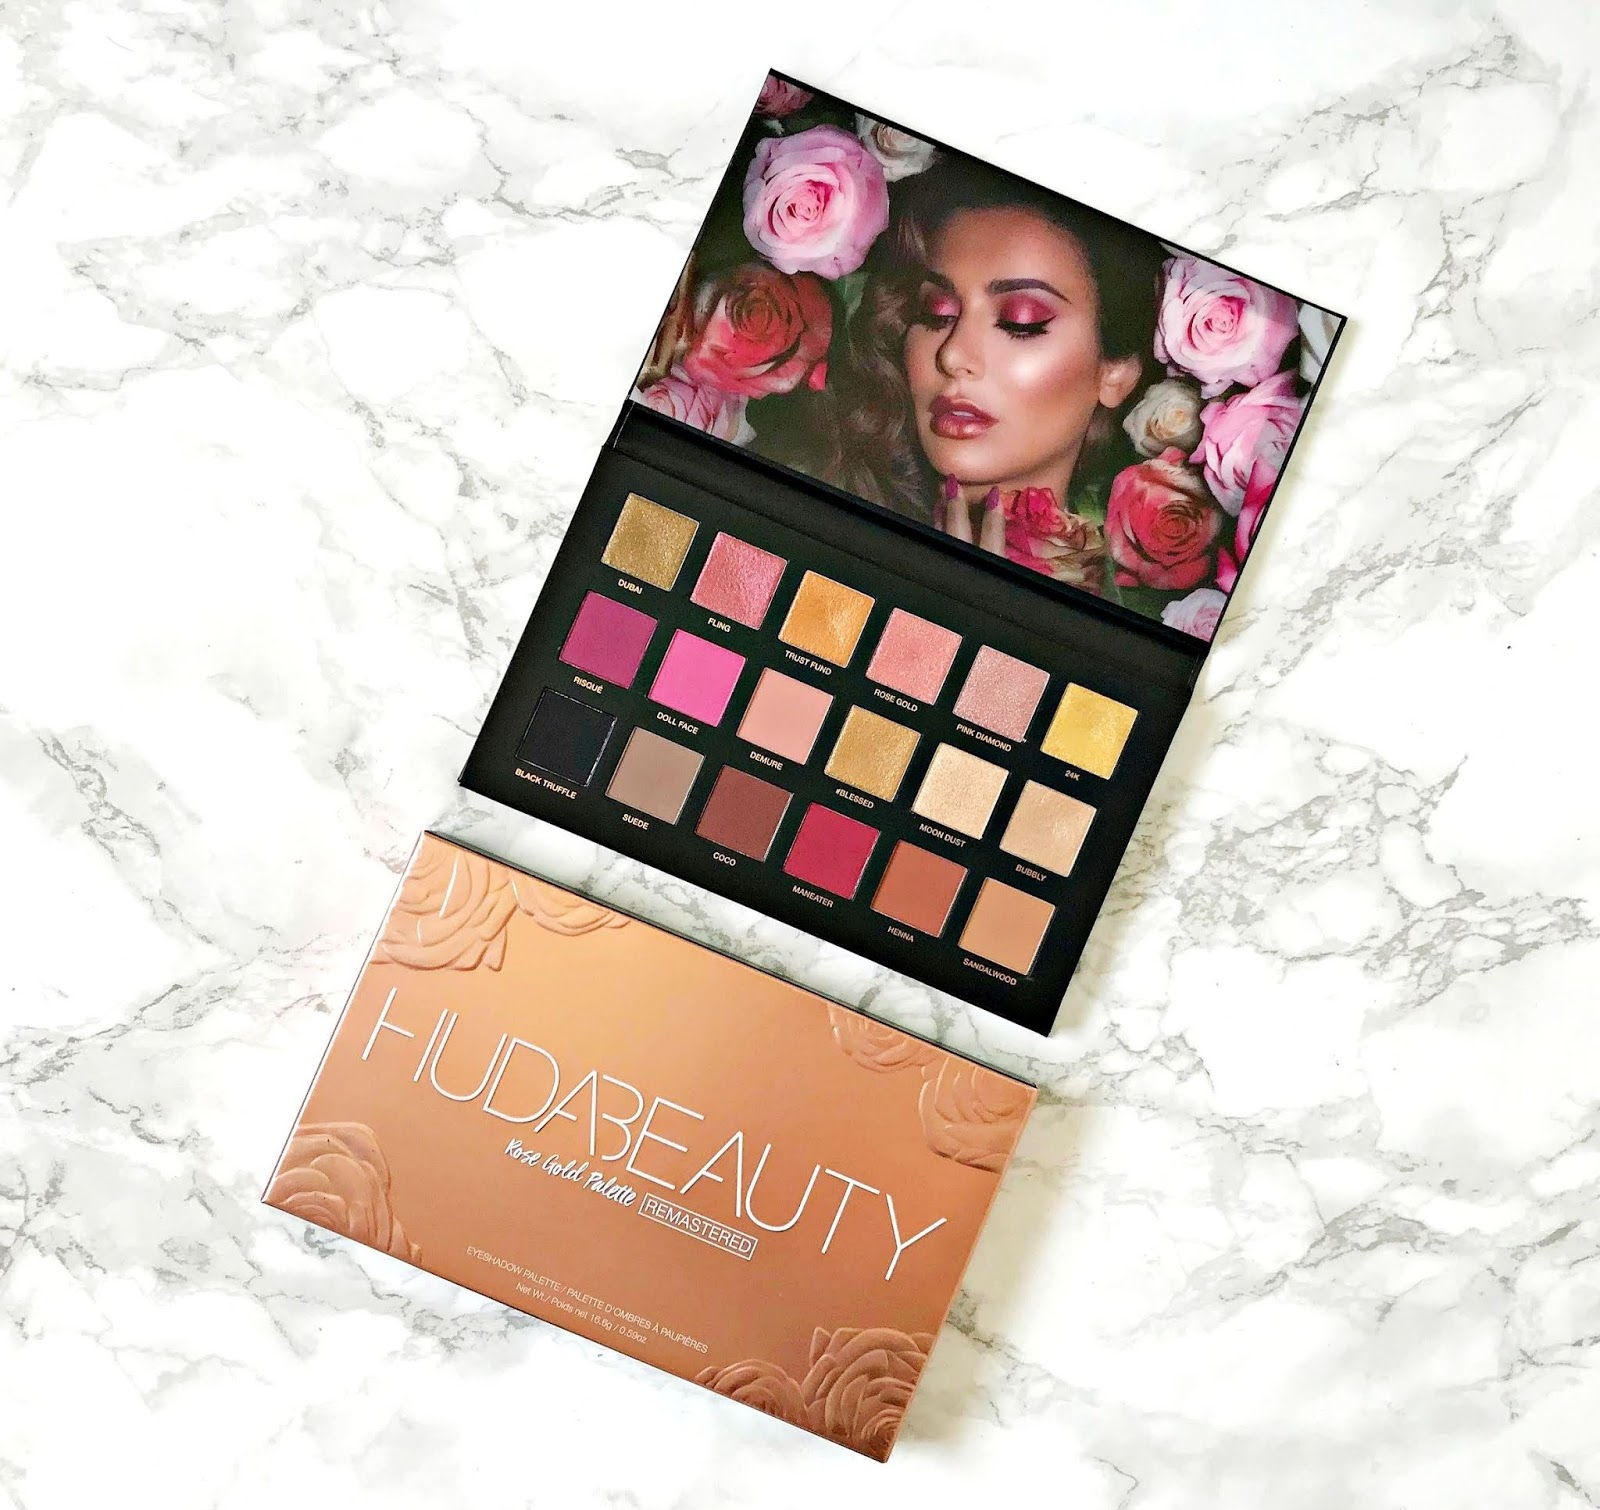 Huda Beauty Rose Gold Remastered Palette Review & Swatches